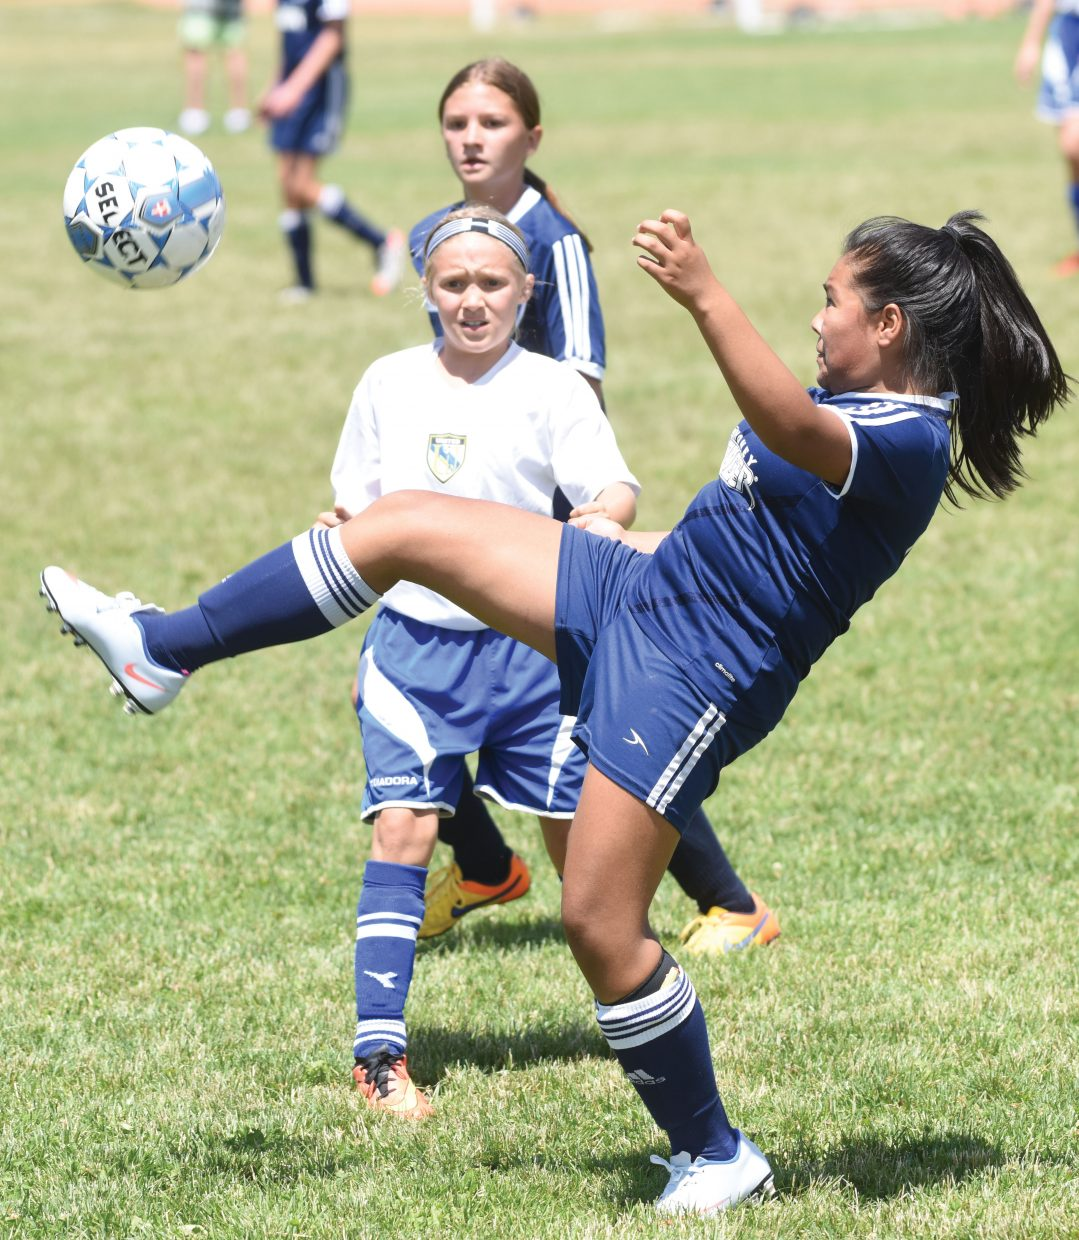 Steamboat's Emili Campoverde attempts to clear a ball in a game against the North Platte United Hornets Friday at Ski Town Park on the second day of the Steamboat Mountain Soccer Tournament. The event brought 154 teams to town and included four days of soccer at fields around Steamboat Springs.